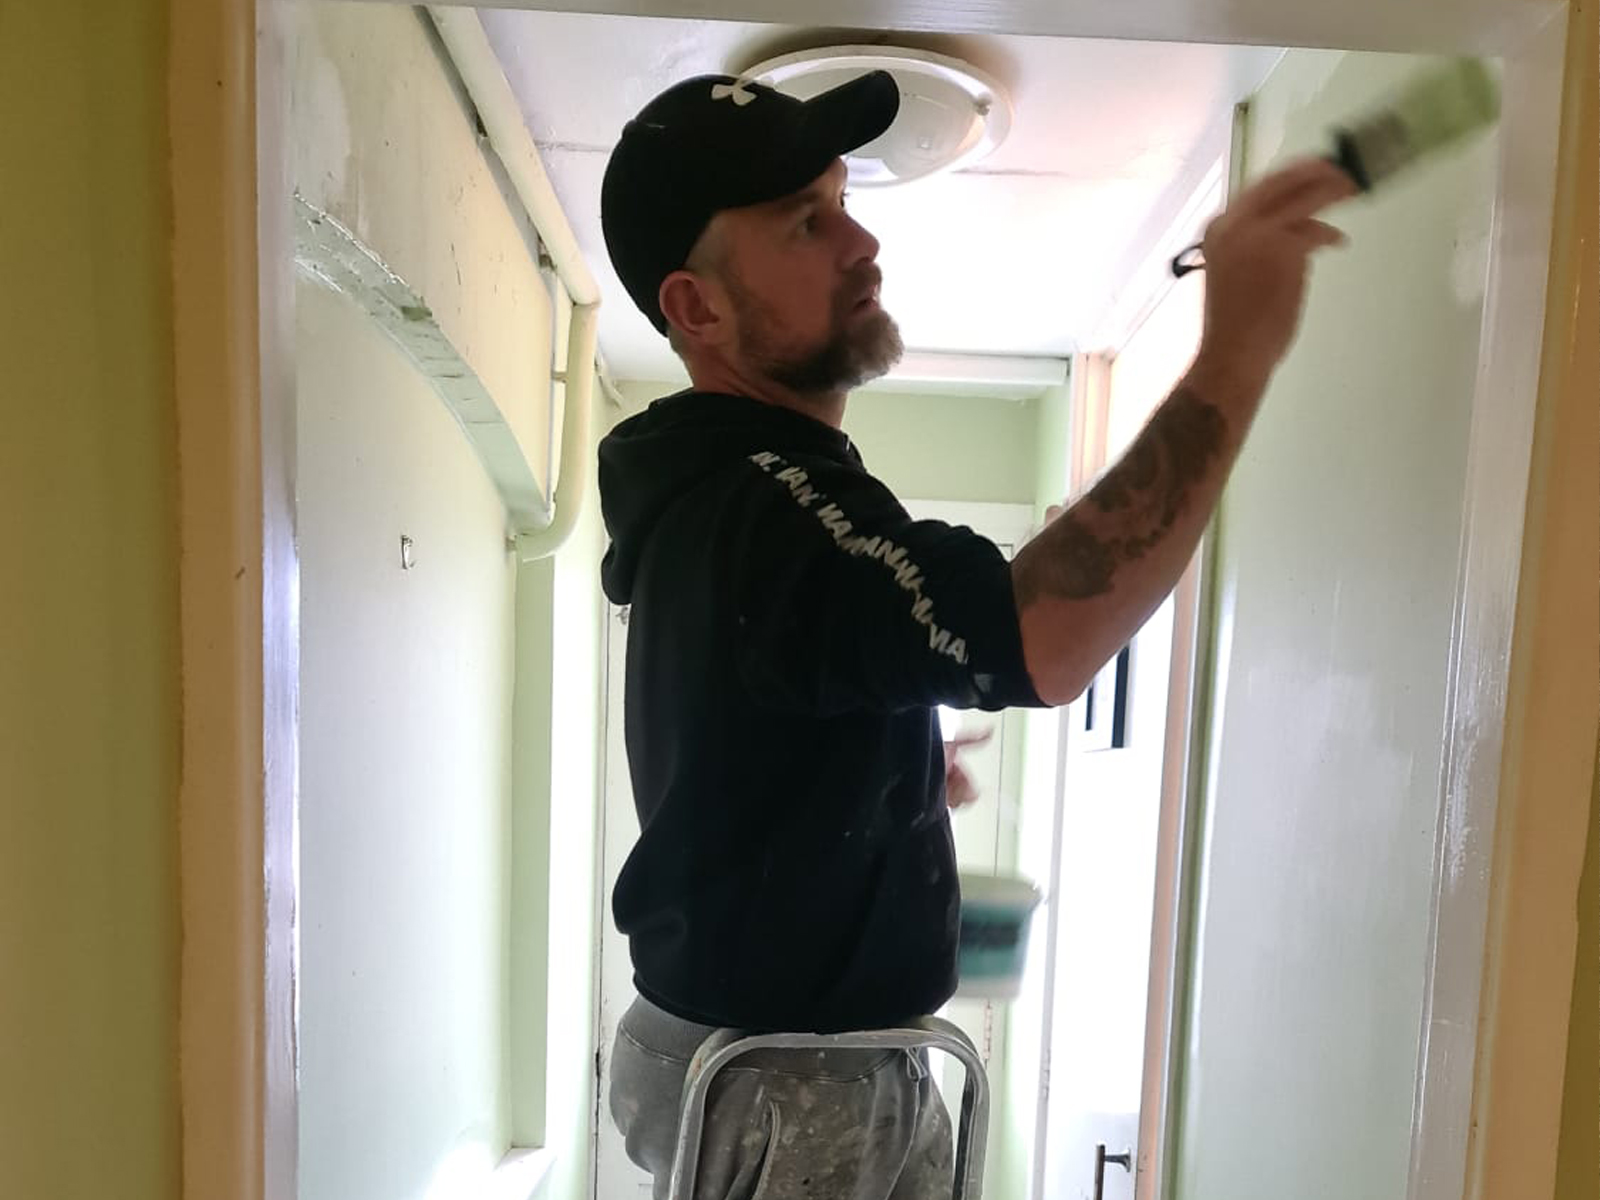 richard-painting-the-loos-at-the-crown-inn